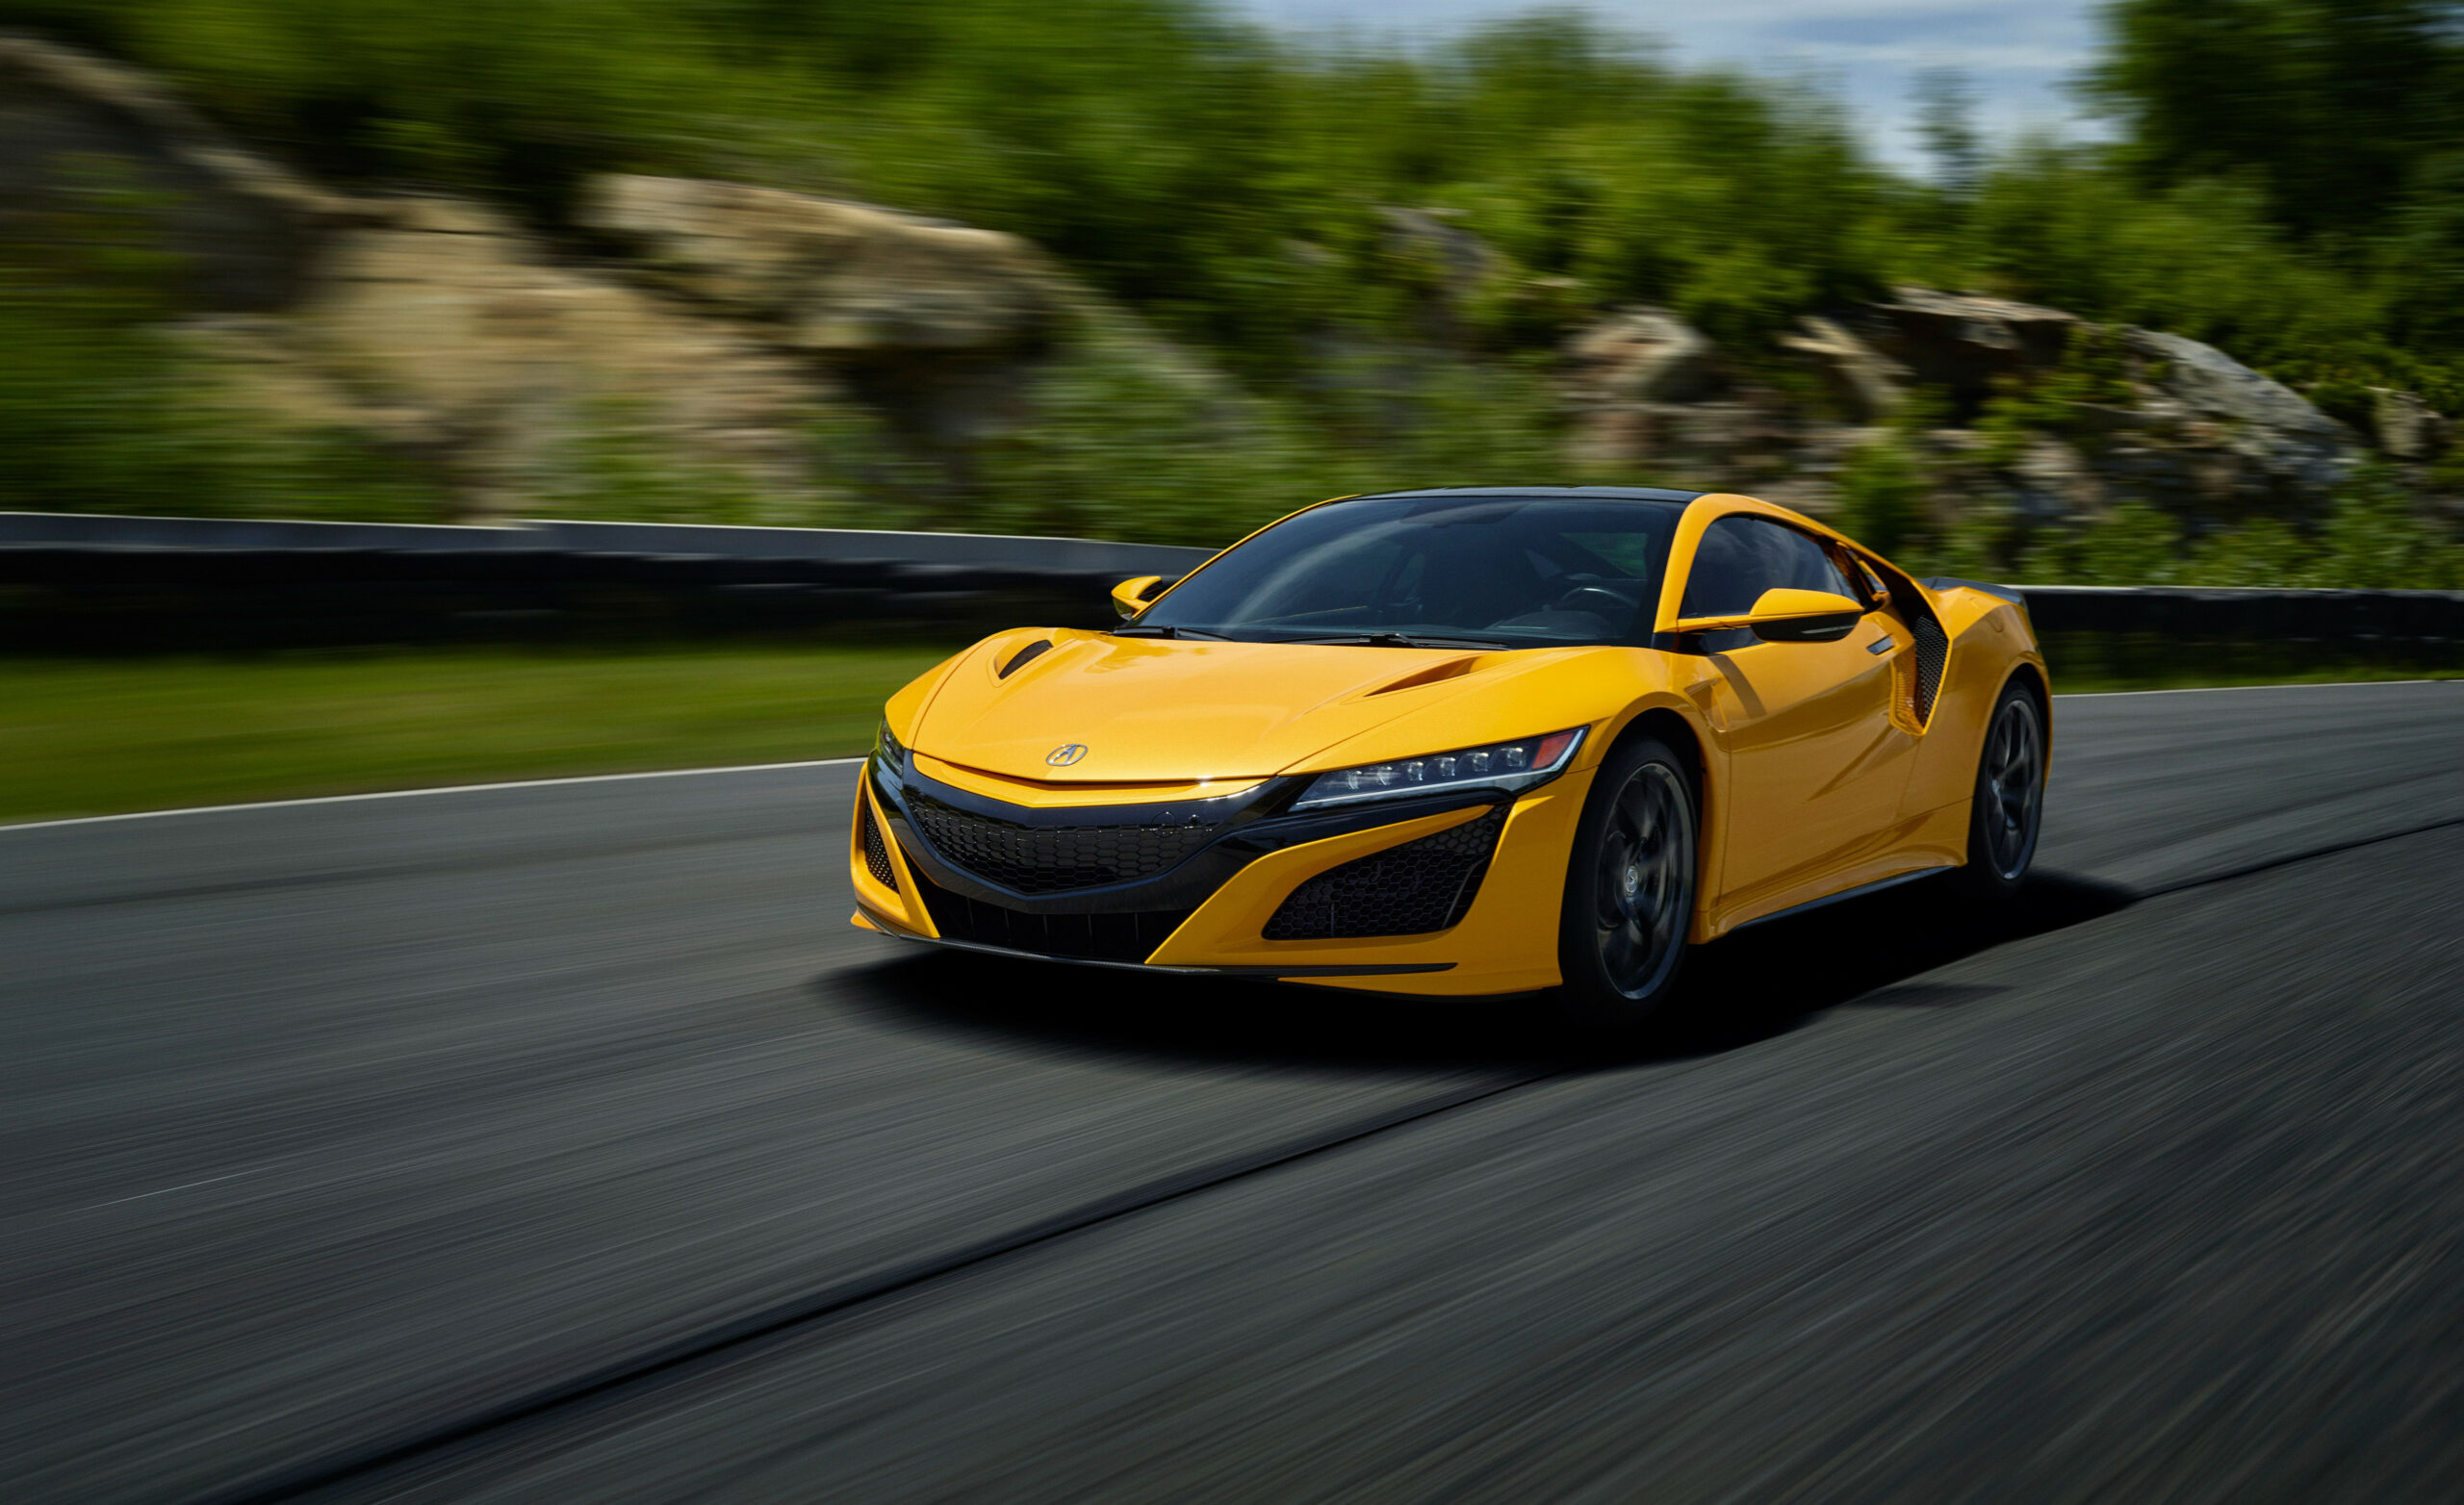 8 Acura NSX Review, Pricing, and Specs